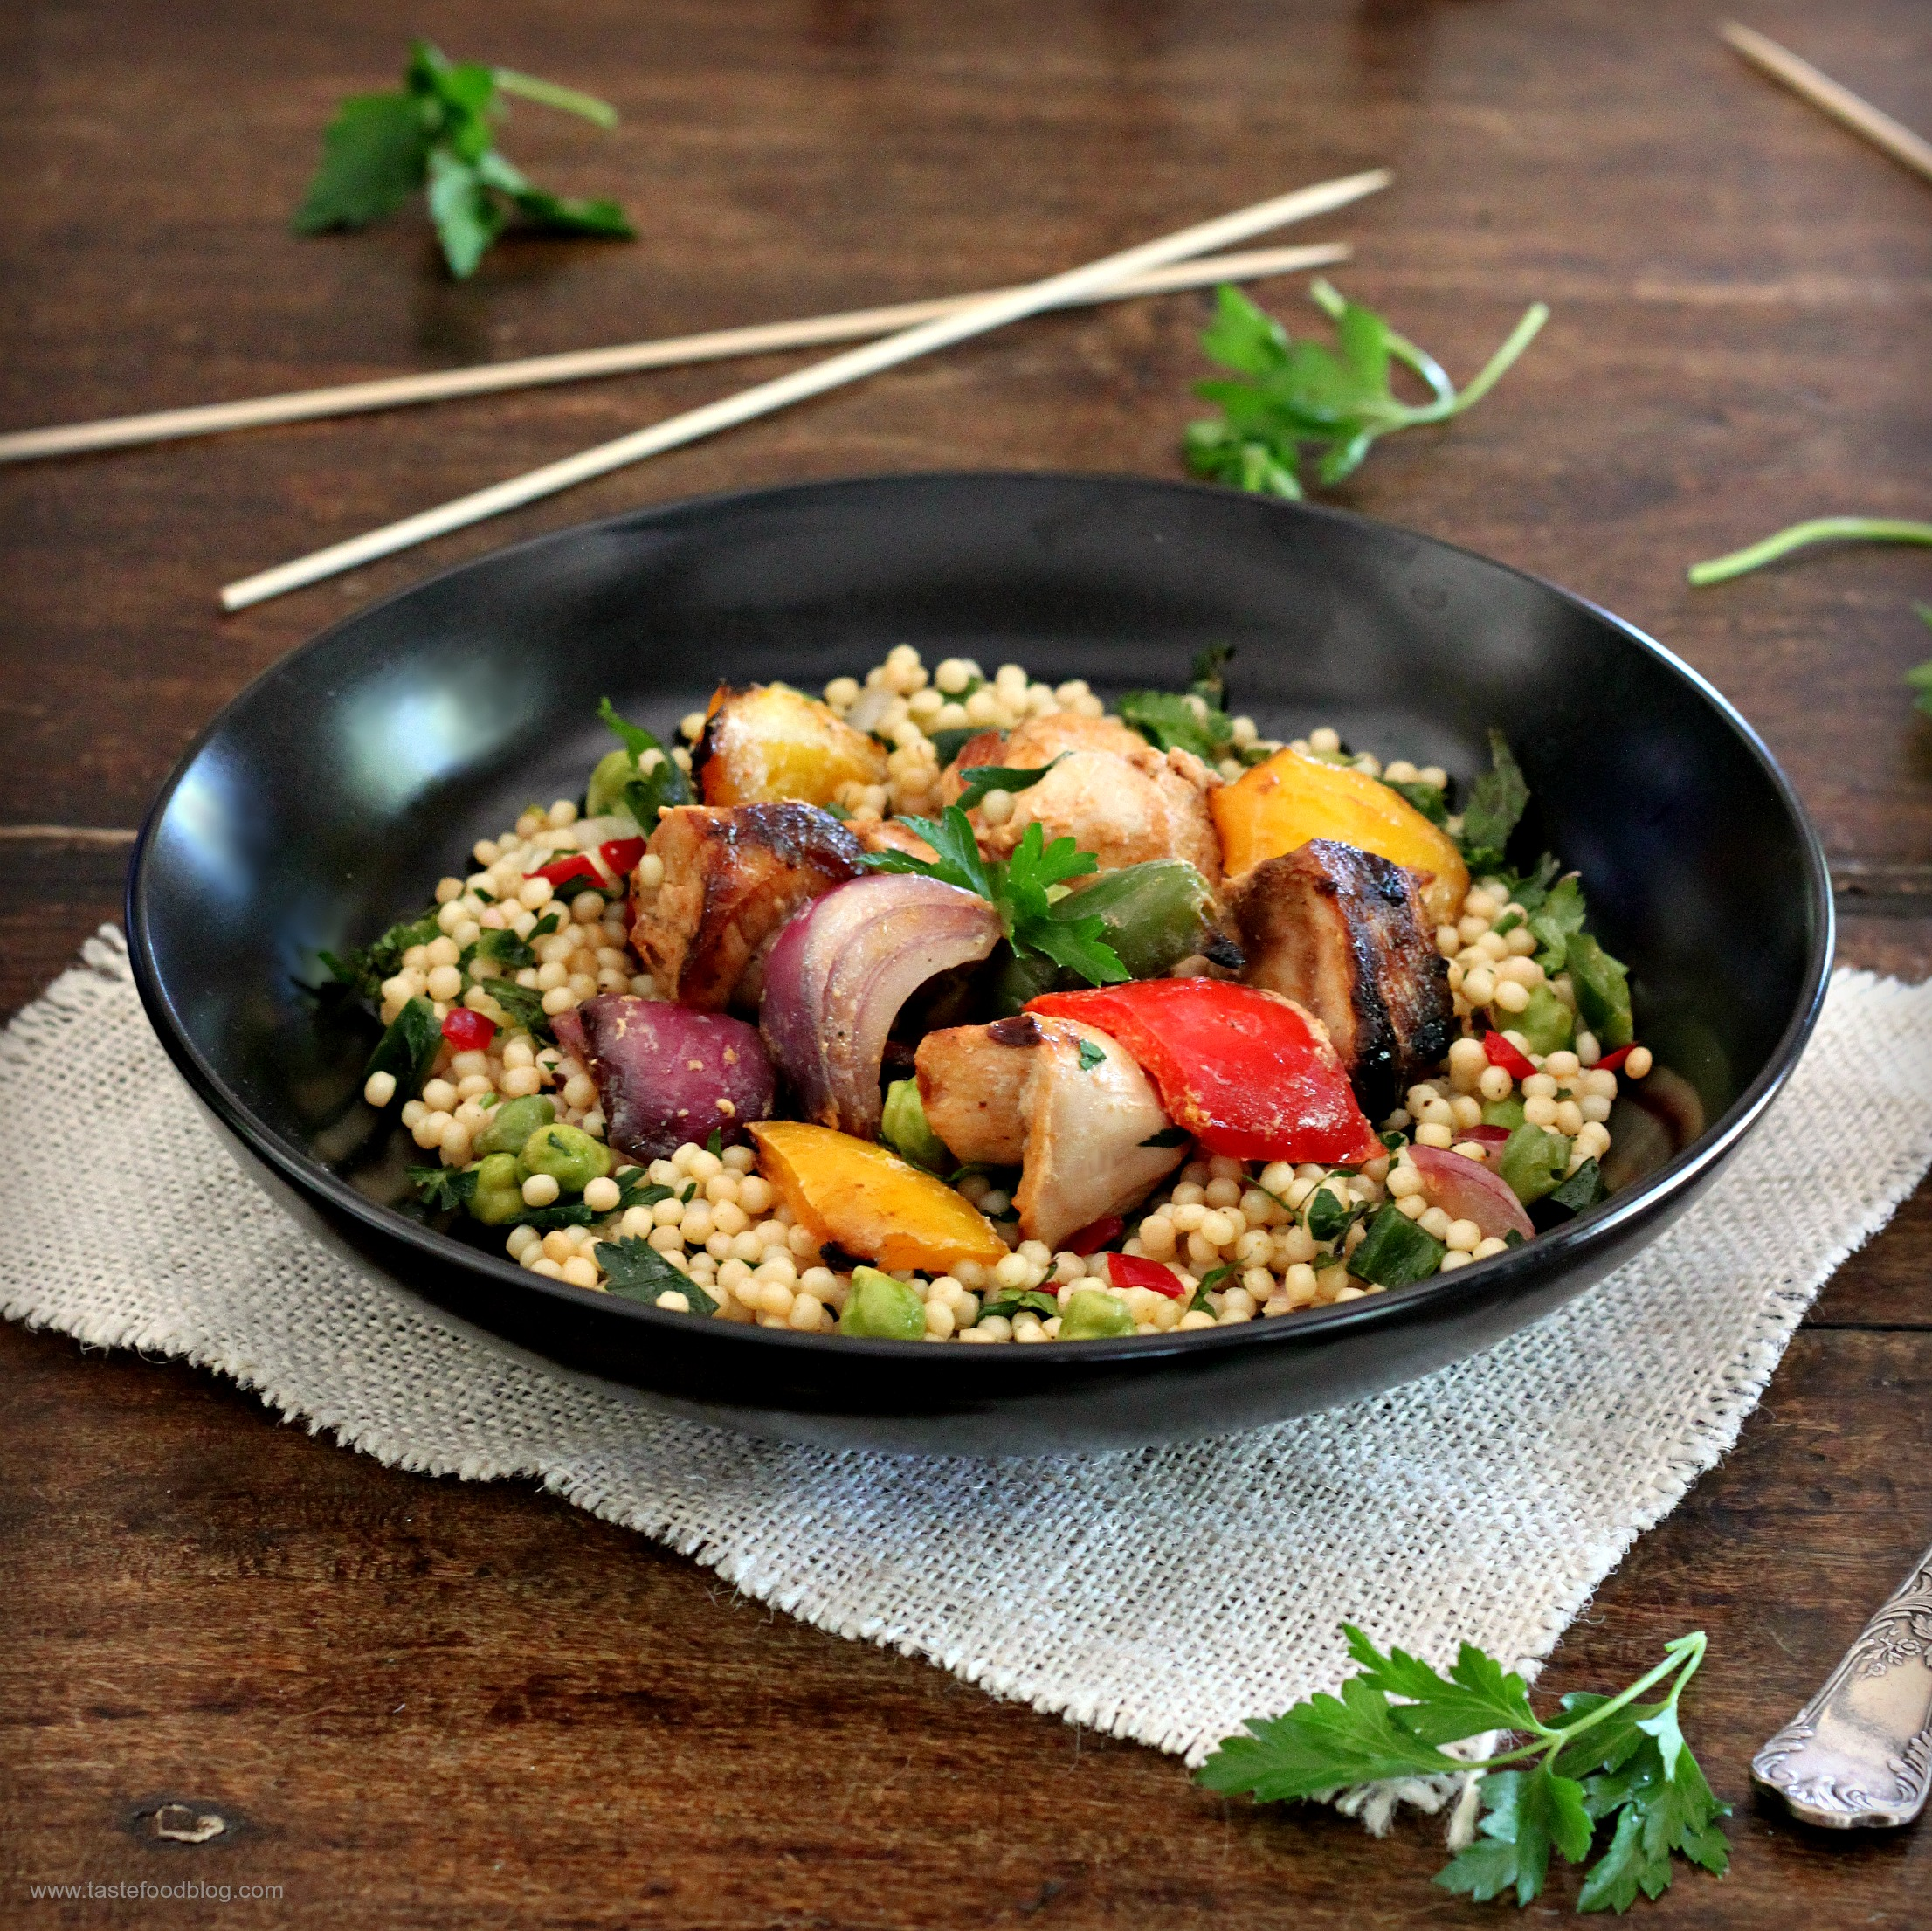 Israeli couscous tastefood grilled chicken and vegetable salad with pearl couscous salad forumfinder Gallery